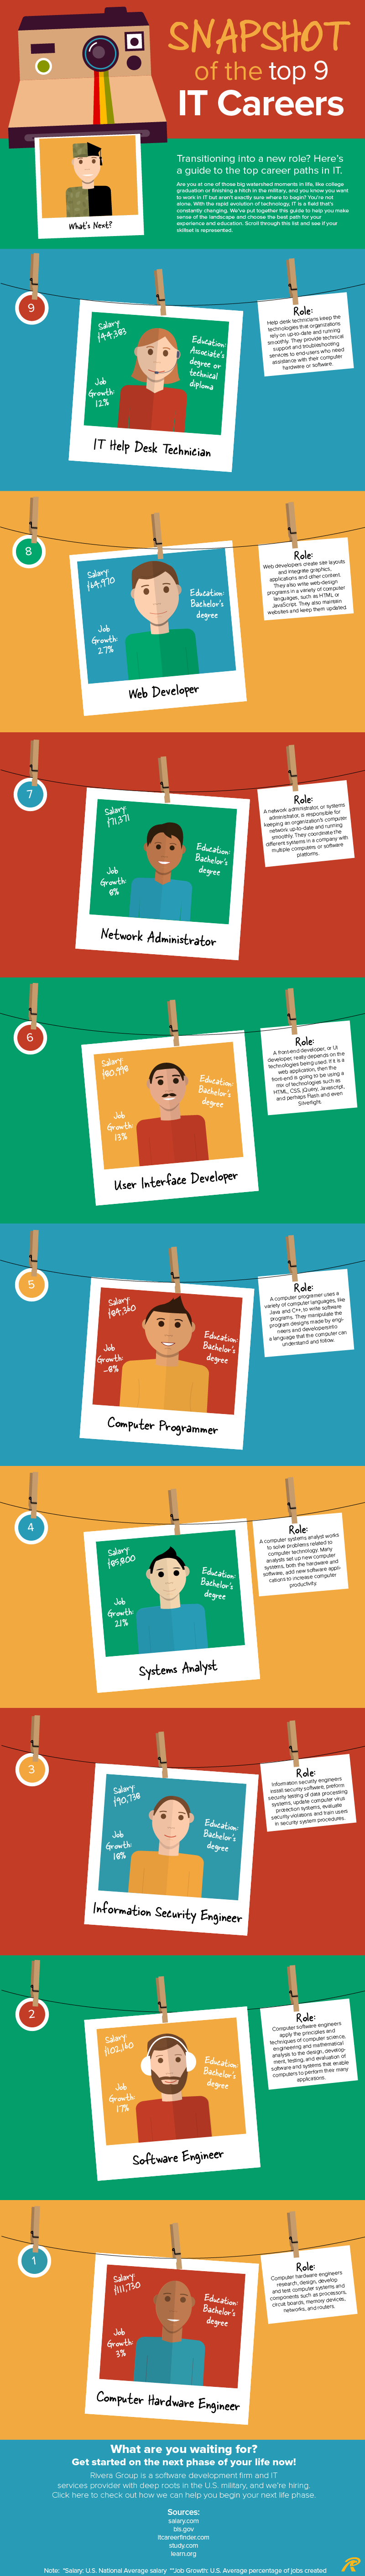 IT Careers Infographic